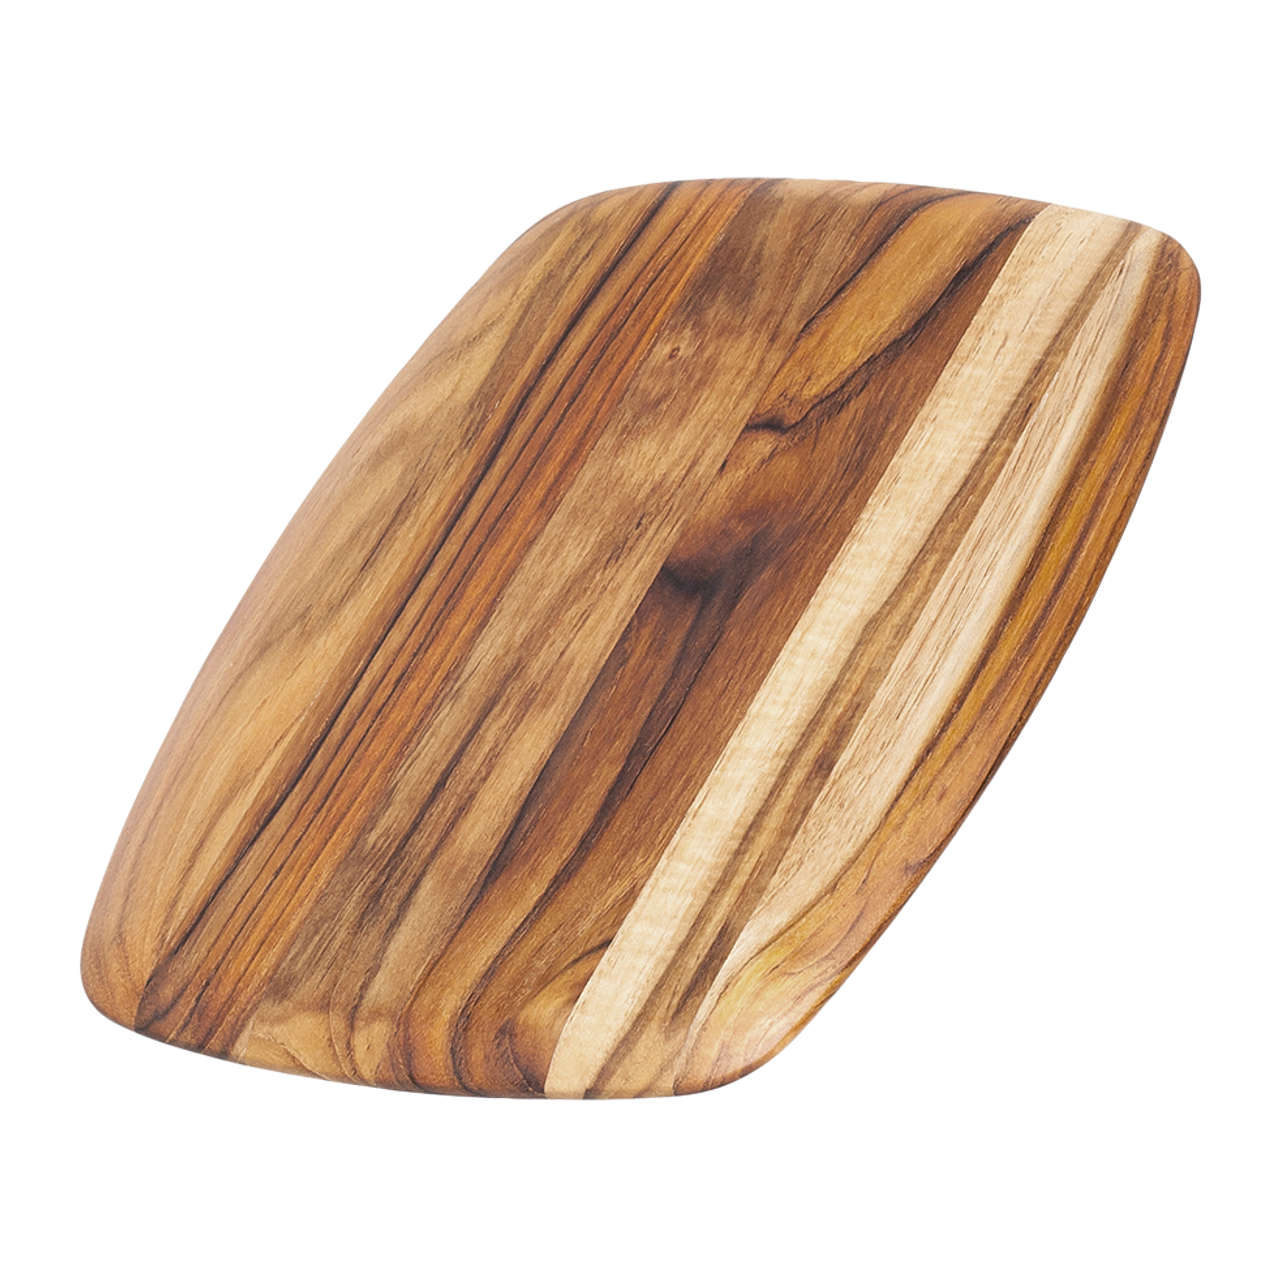 TEAKHAUS ROUNDED EDGE CUTTING BOARD 12x8.5